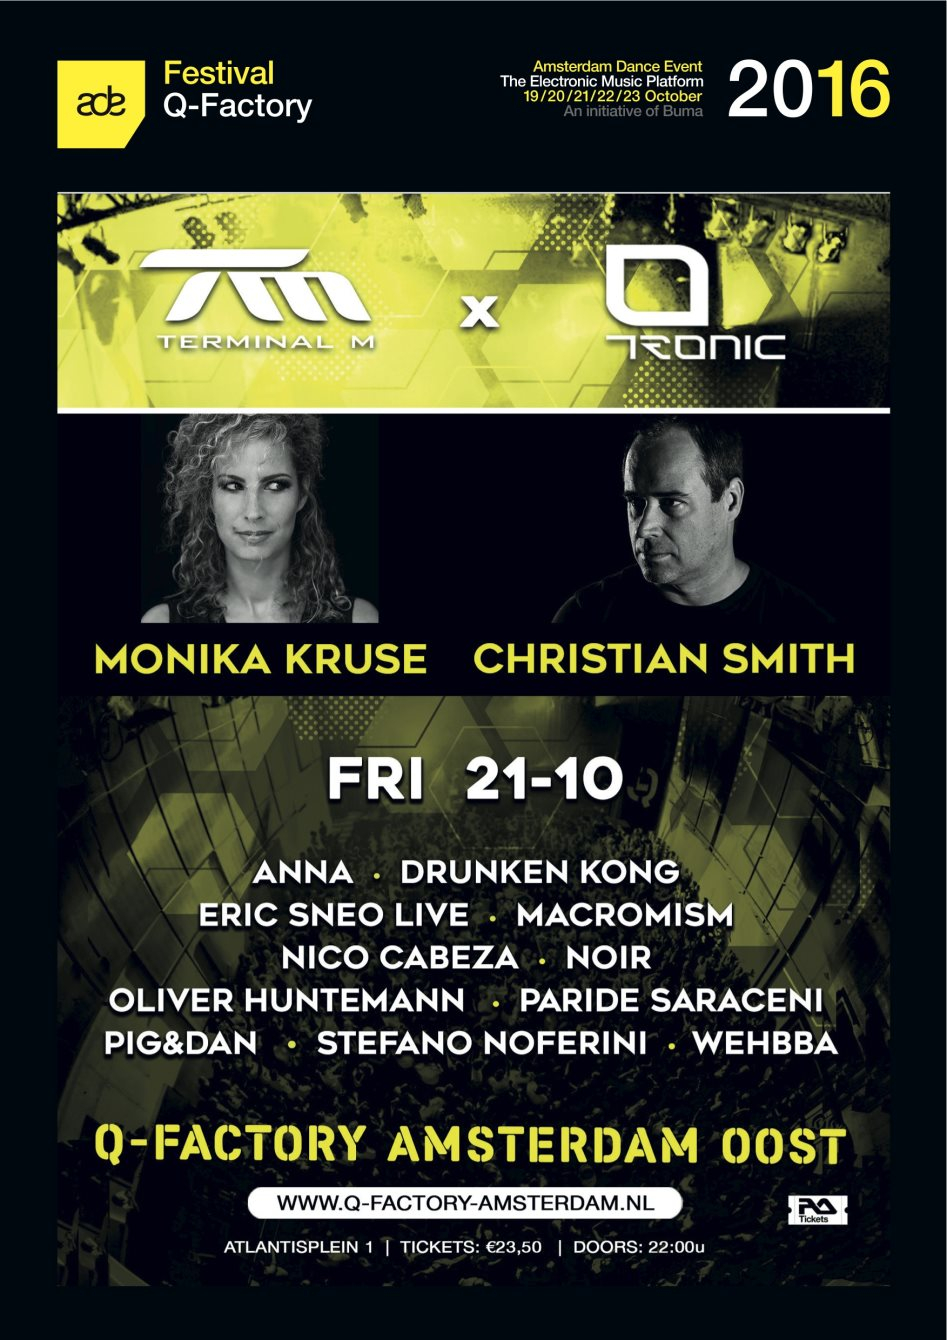 ADE: Terminal M x Tronic with Monika Kruse, Christian Smith, Oliver Huntemann, Wehbba and More - Flyer front